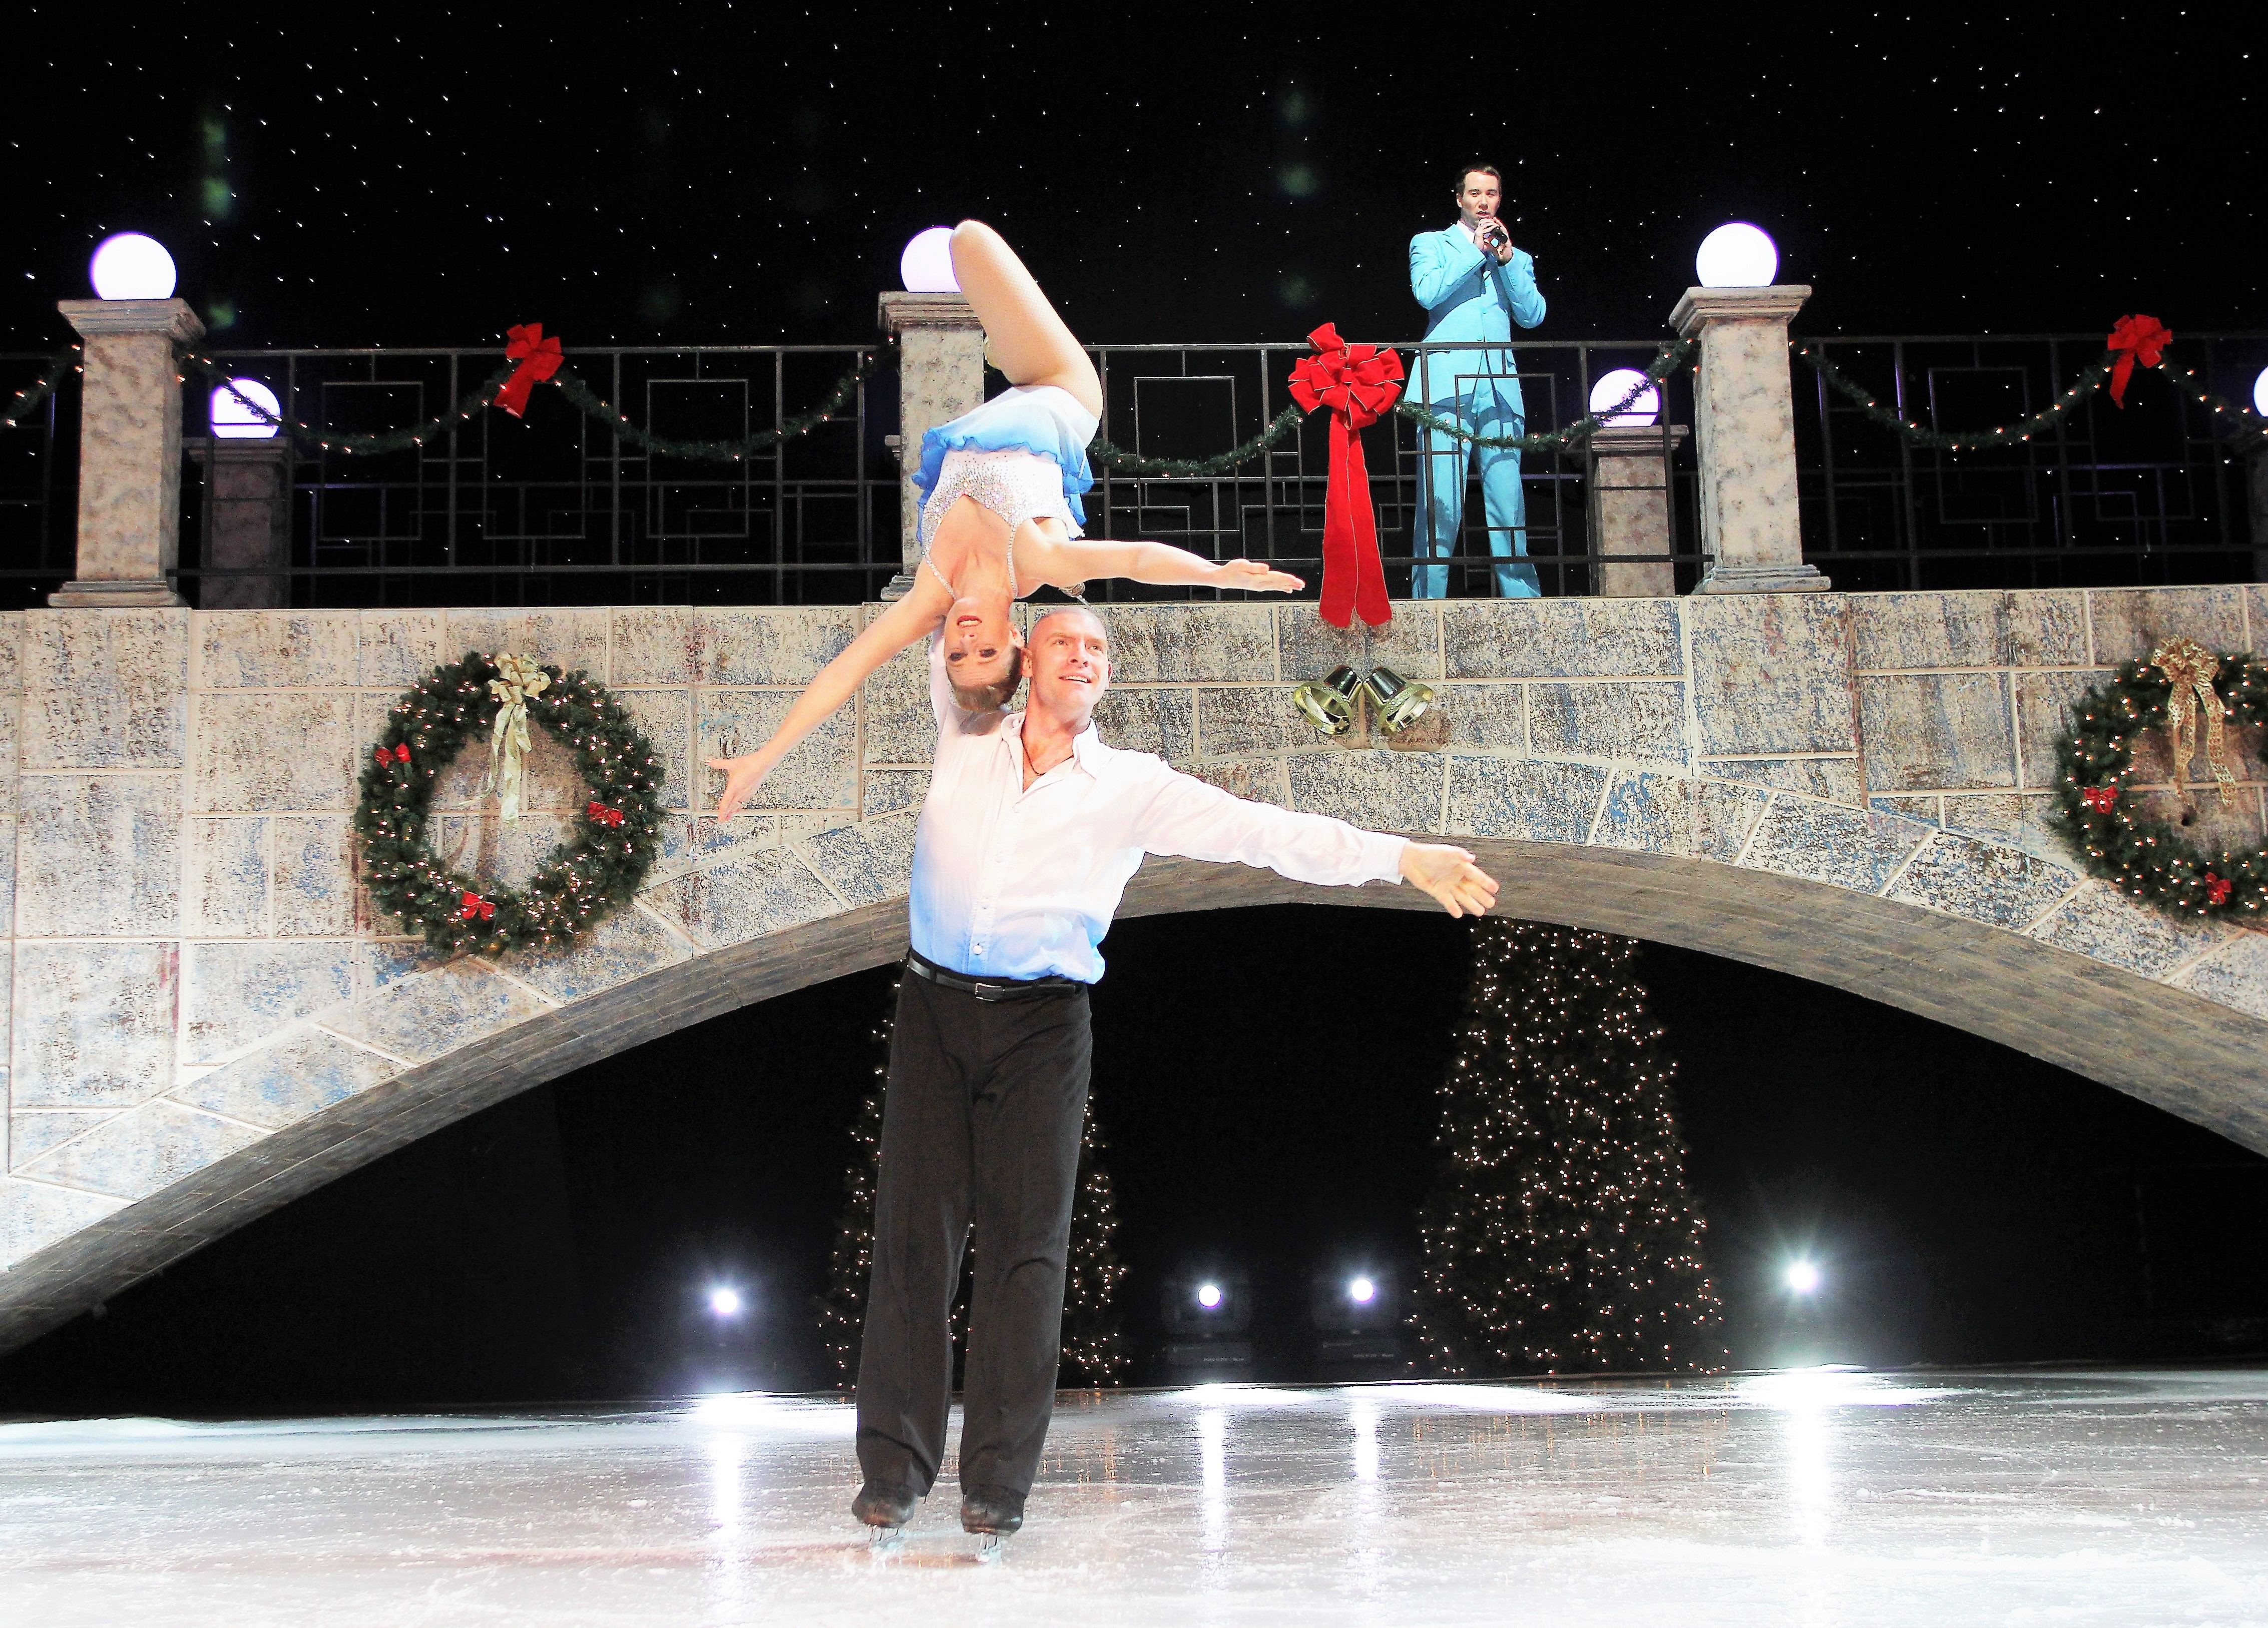 dsm-ice-skaters-a-2